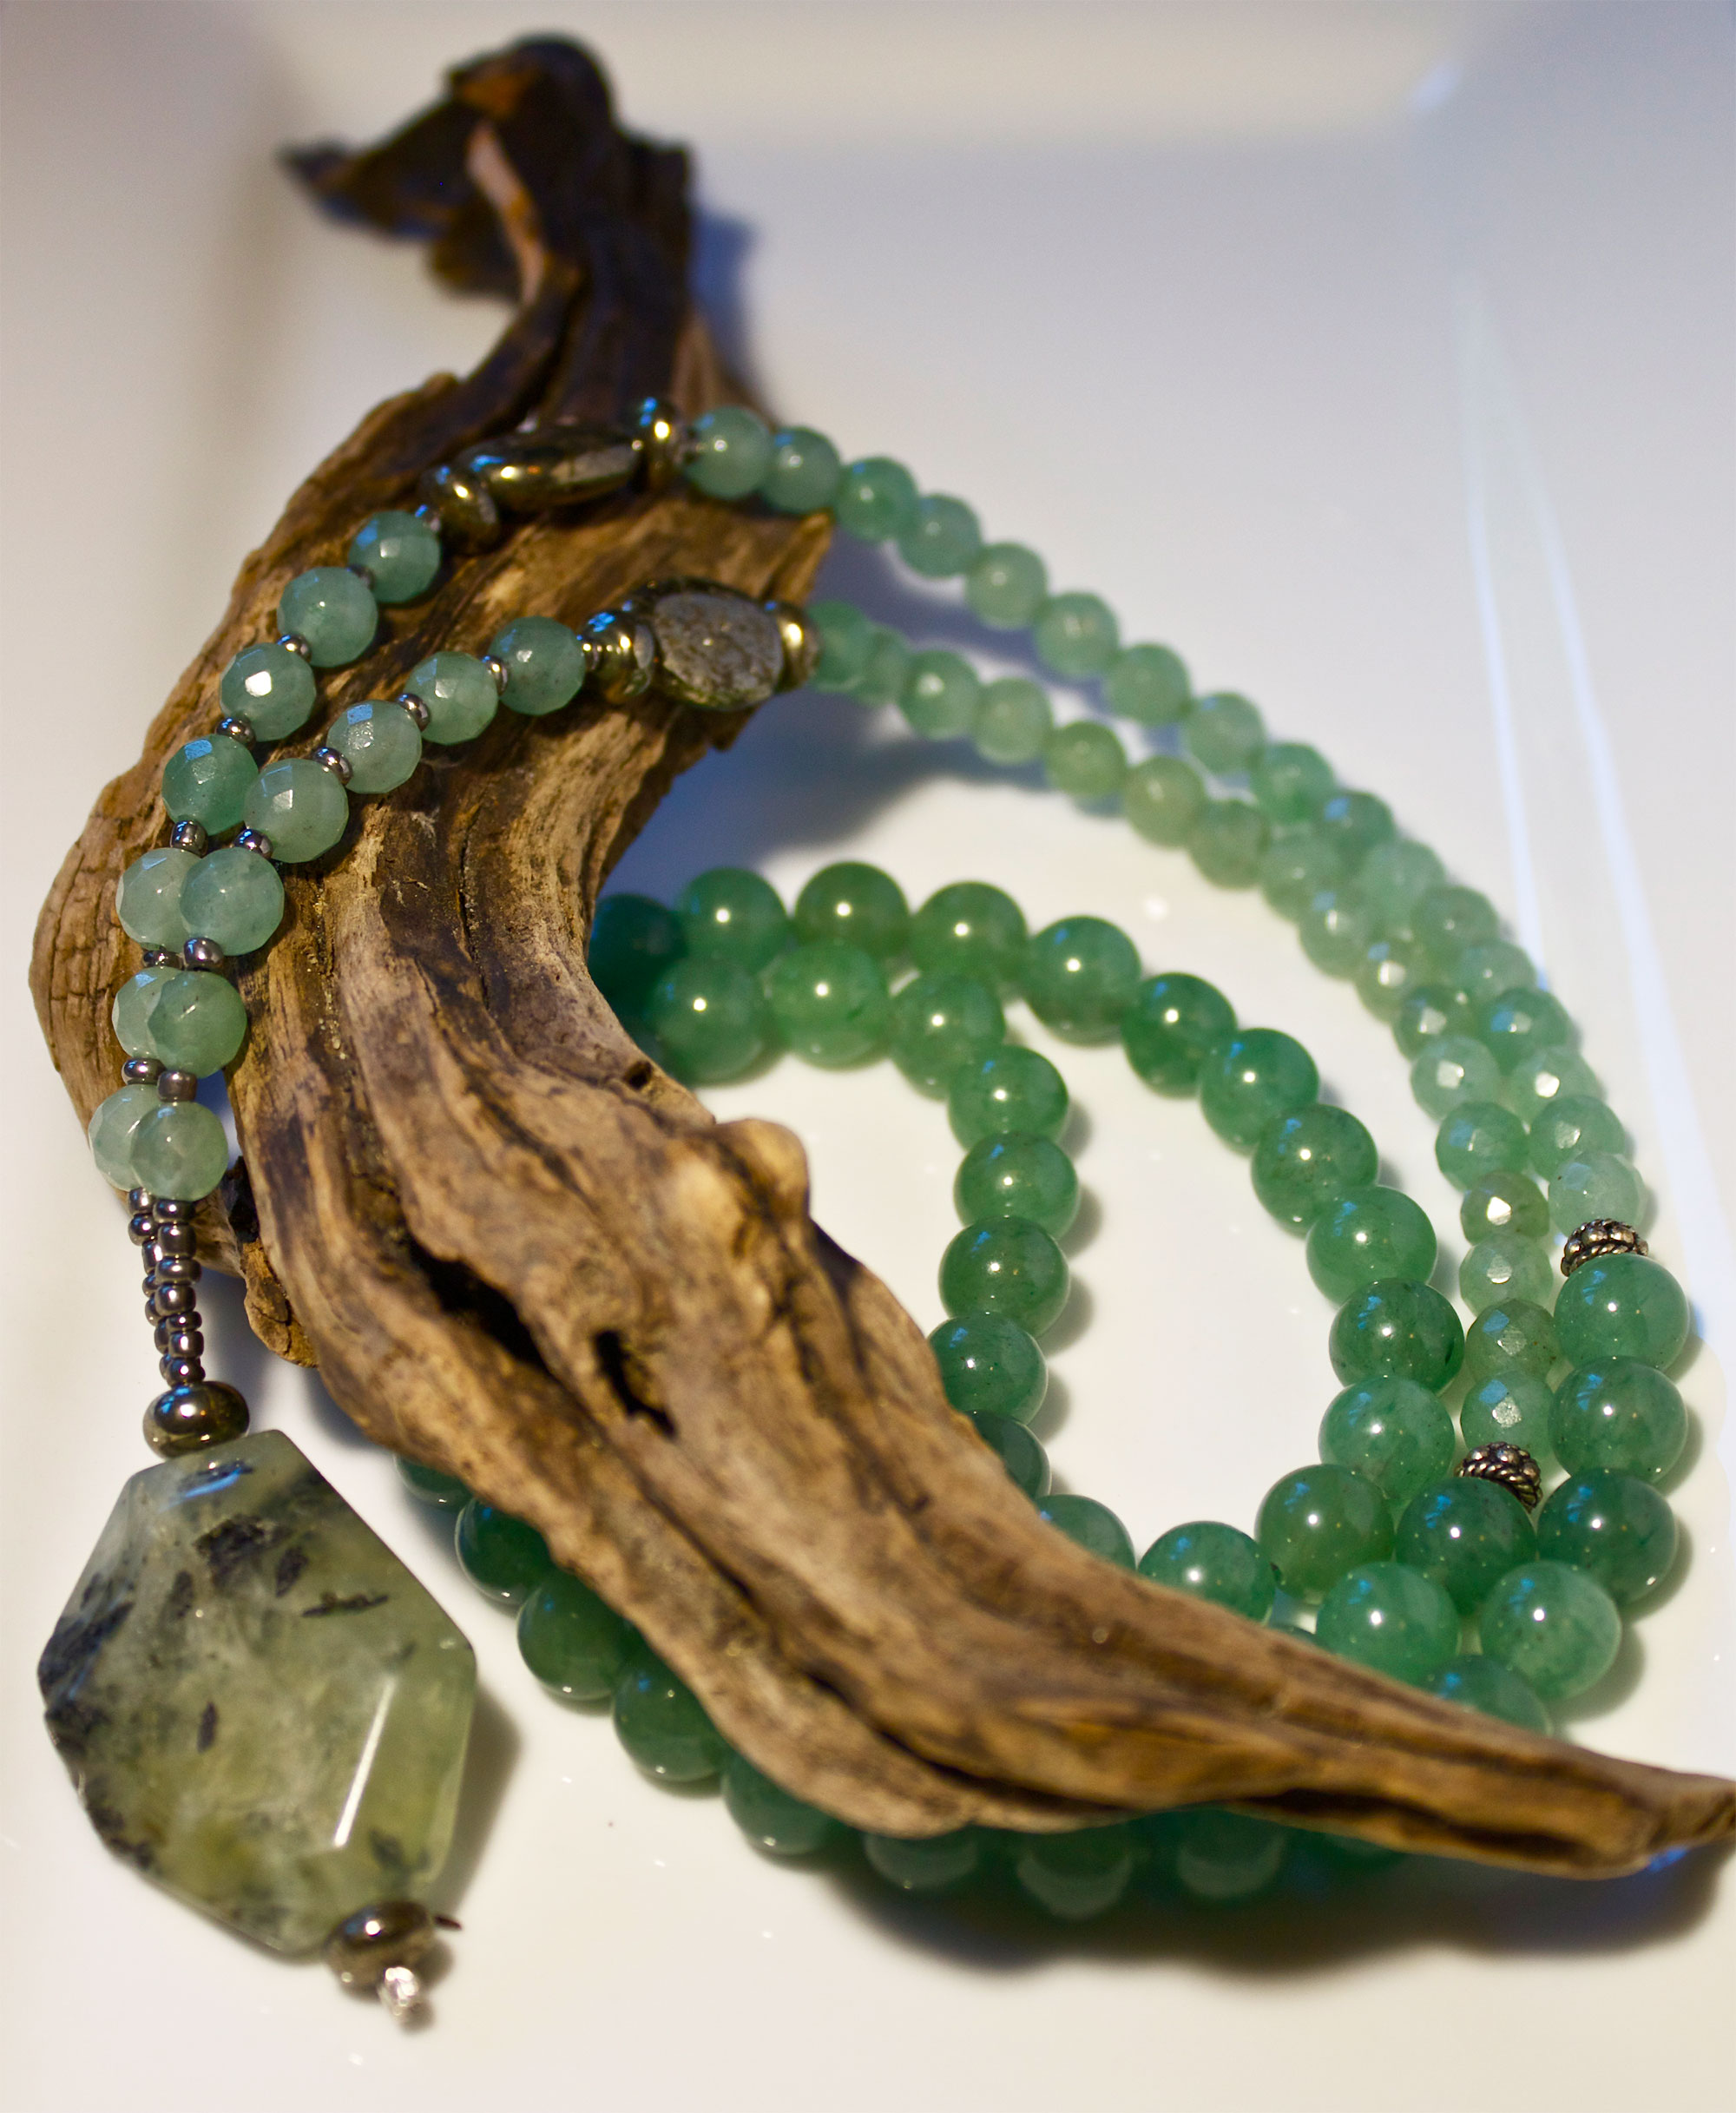 Green Aventurine and Pyrite with Prehnite Nugget Mala